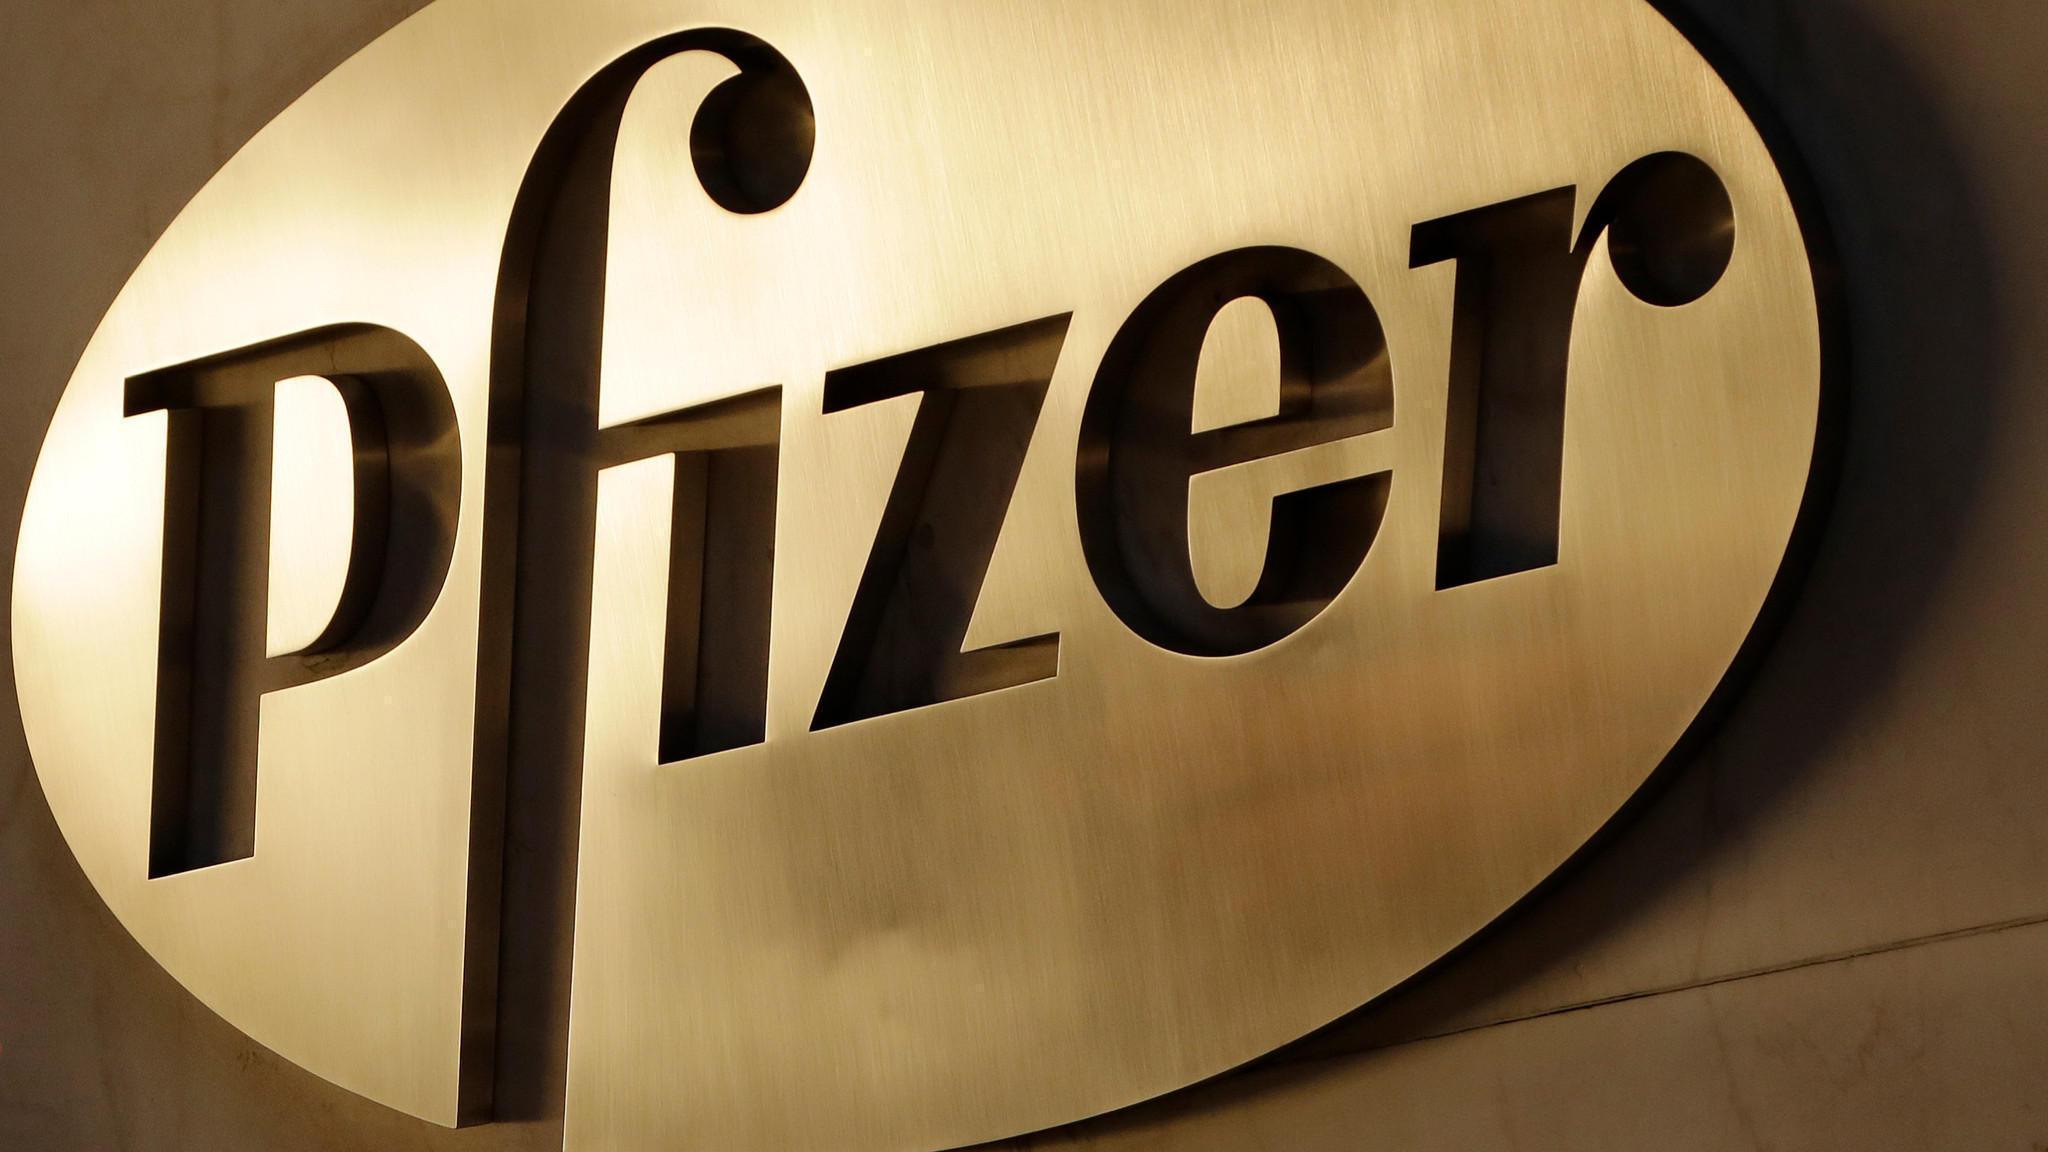 Pfizer Wallpapers: Pfizer Buying Anacor Pharmaceuticals In $5.2-billion Deal